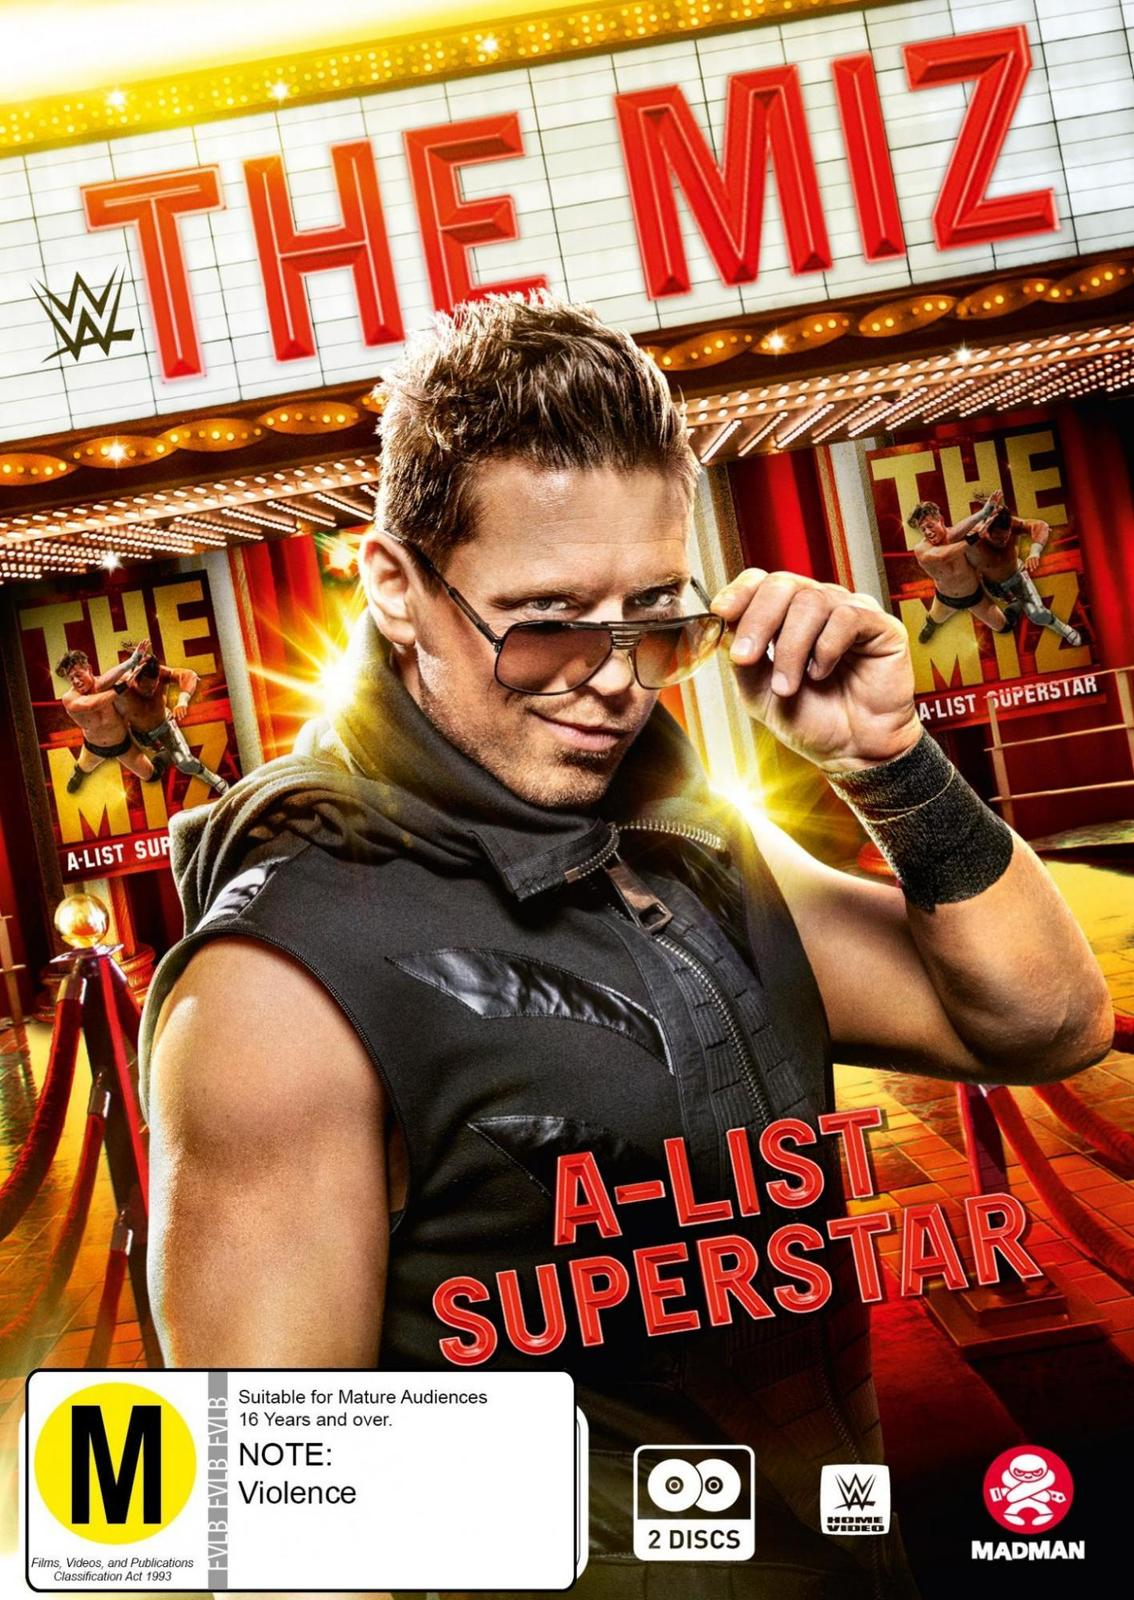 WWE: The Miz - A-list Superstar on DVD image